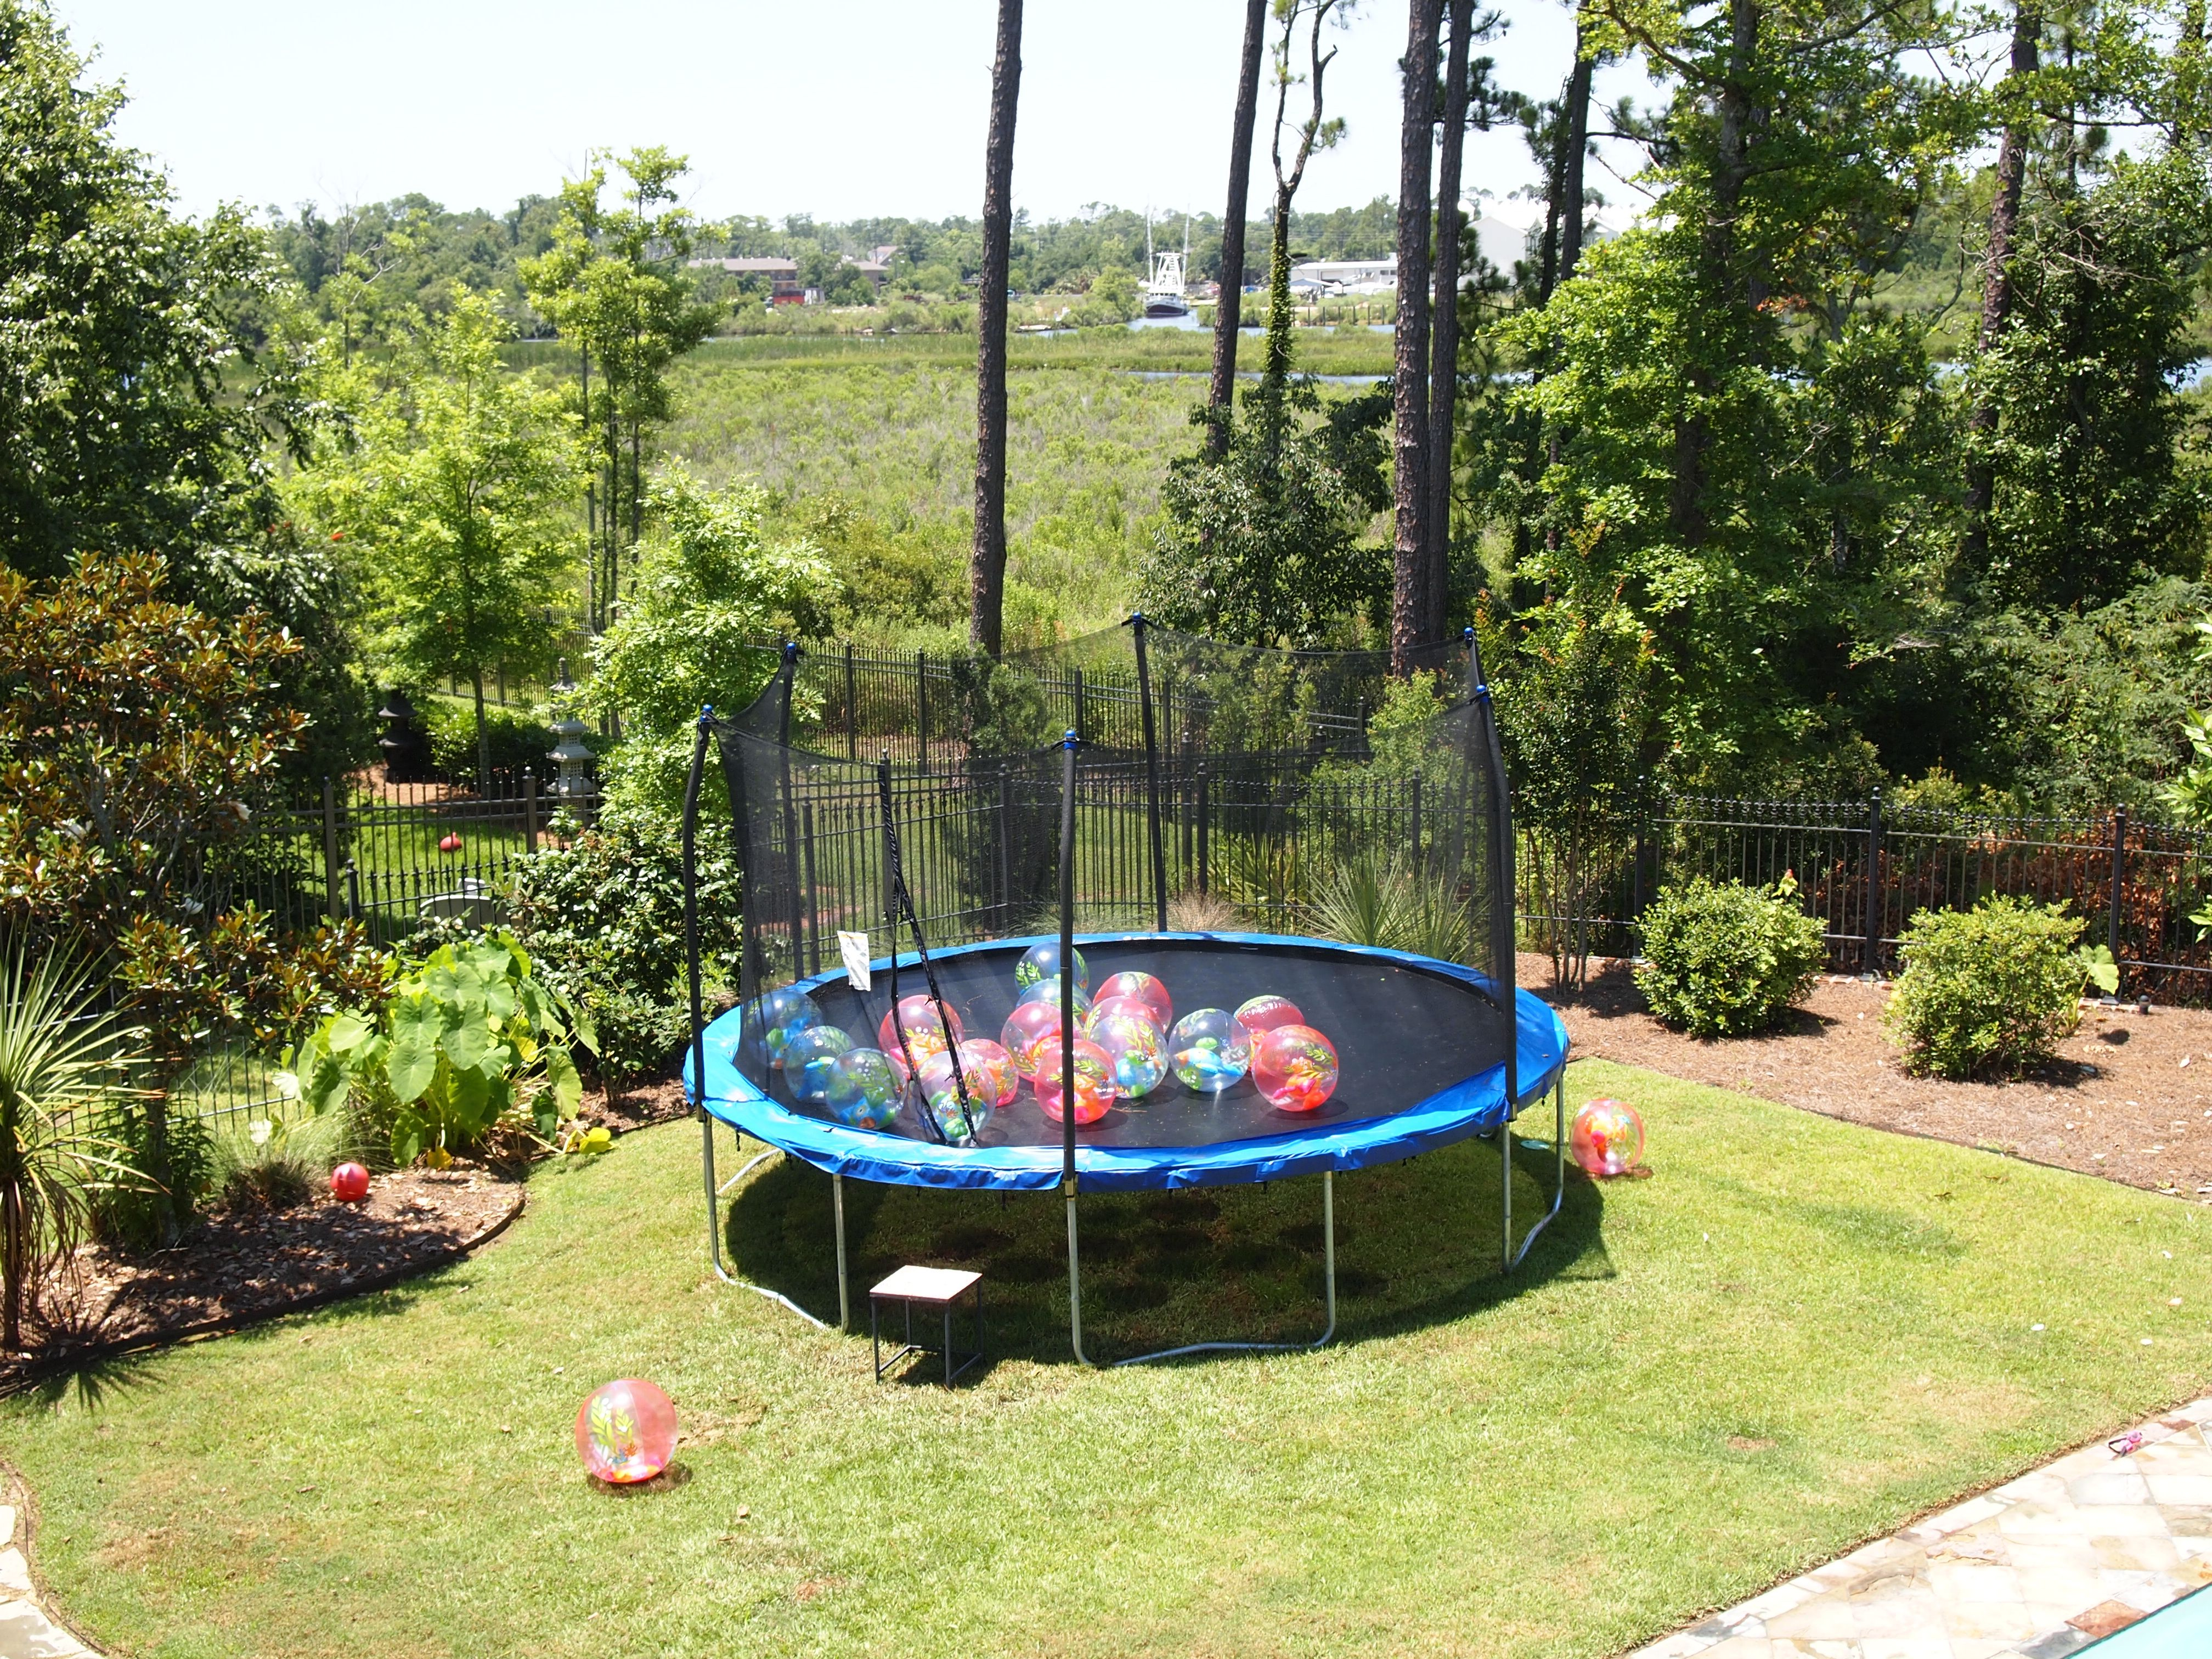 trampoline filled with beach balls pool and waterslide were fun